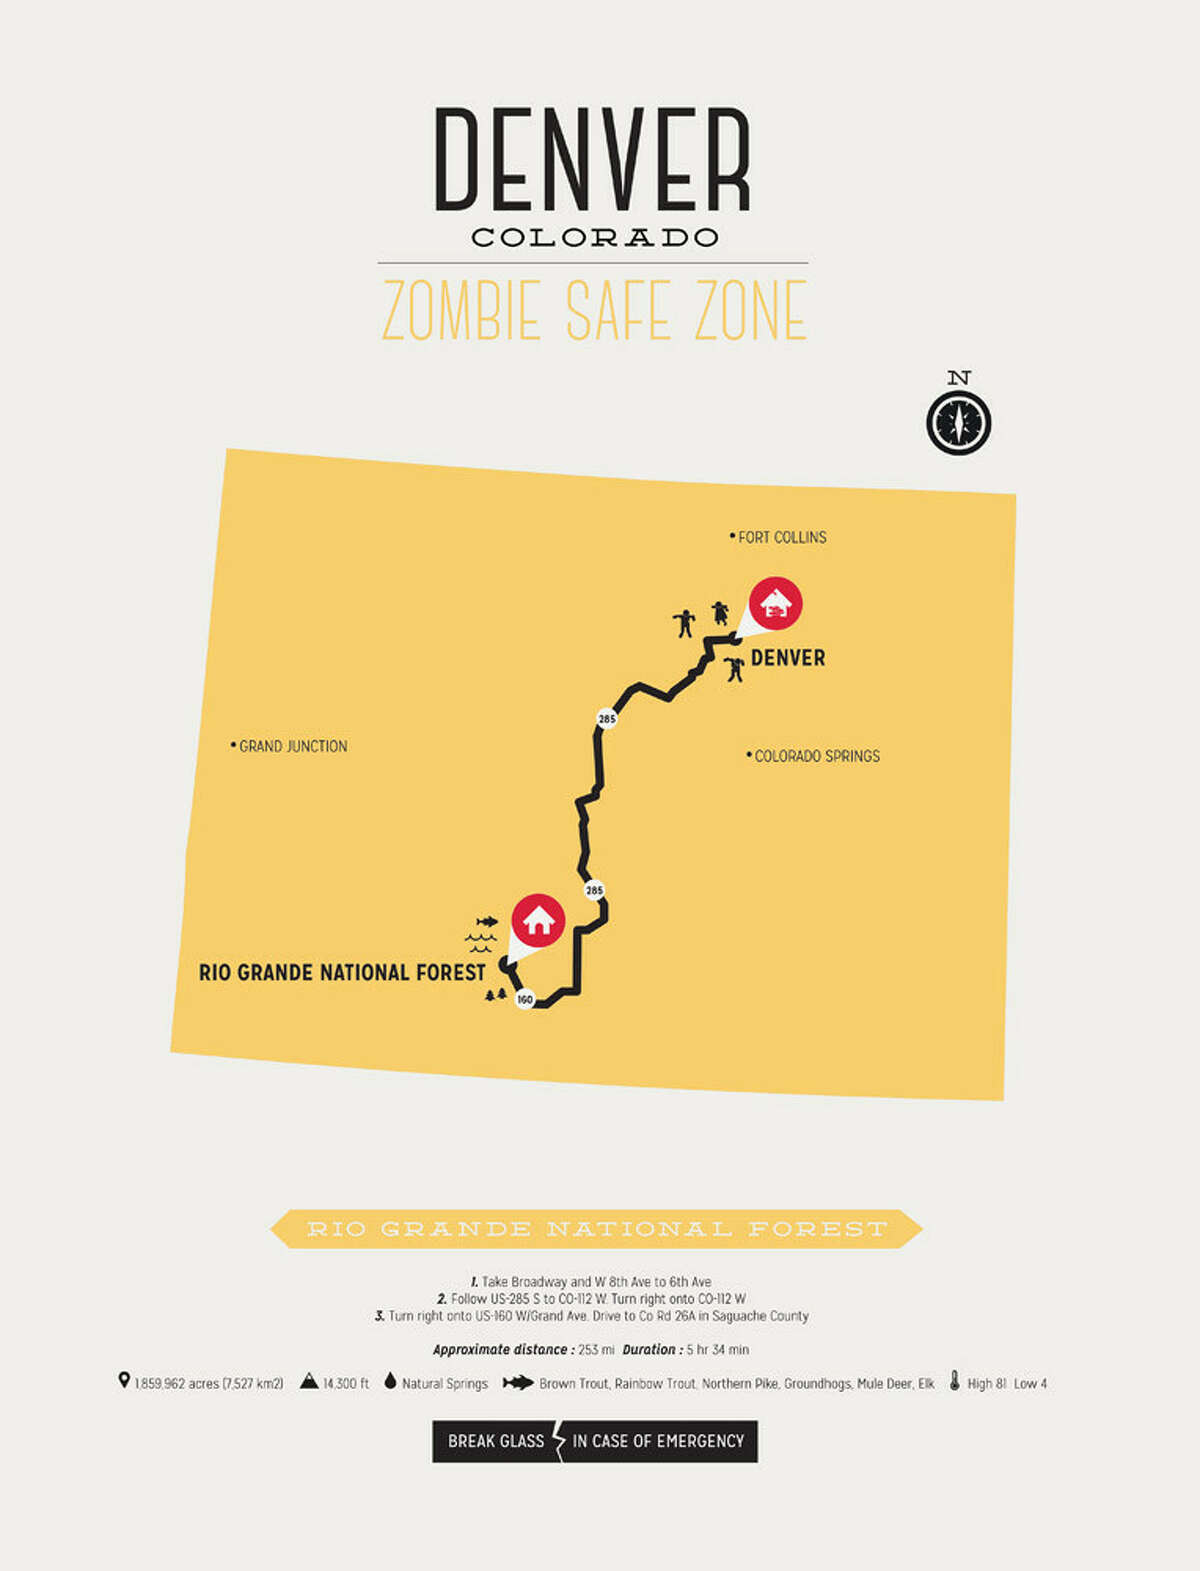 City: Denver, ColoradoSafe zone: Rio Grande National ForestResources: Natural spring water, brown trout, rainbow trout, northern pike, groundhogs, mule deer and elkSource: Design Different